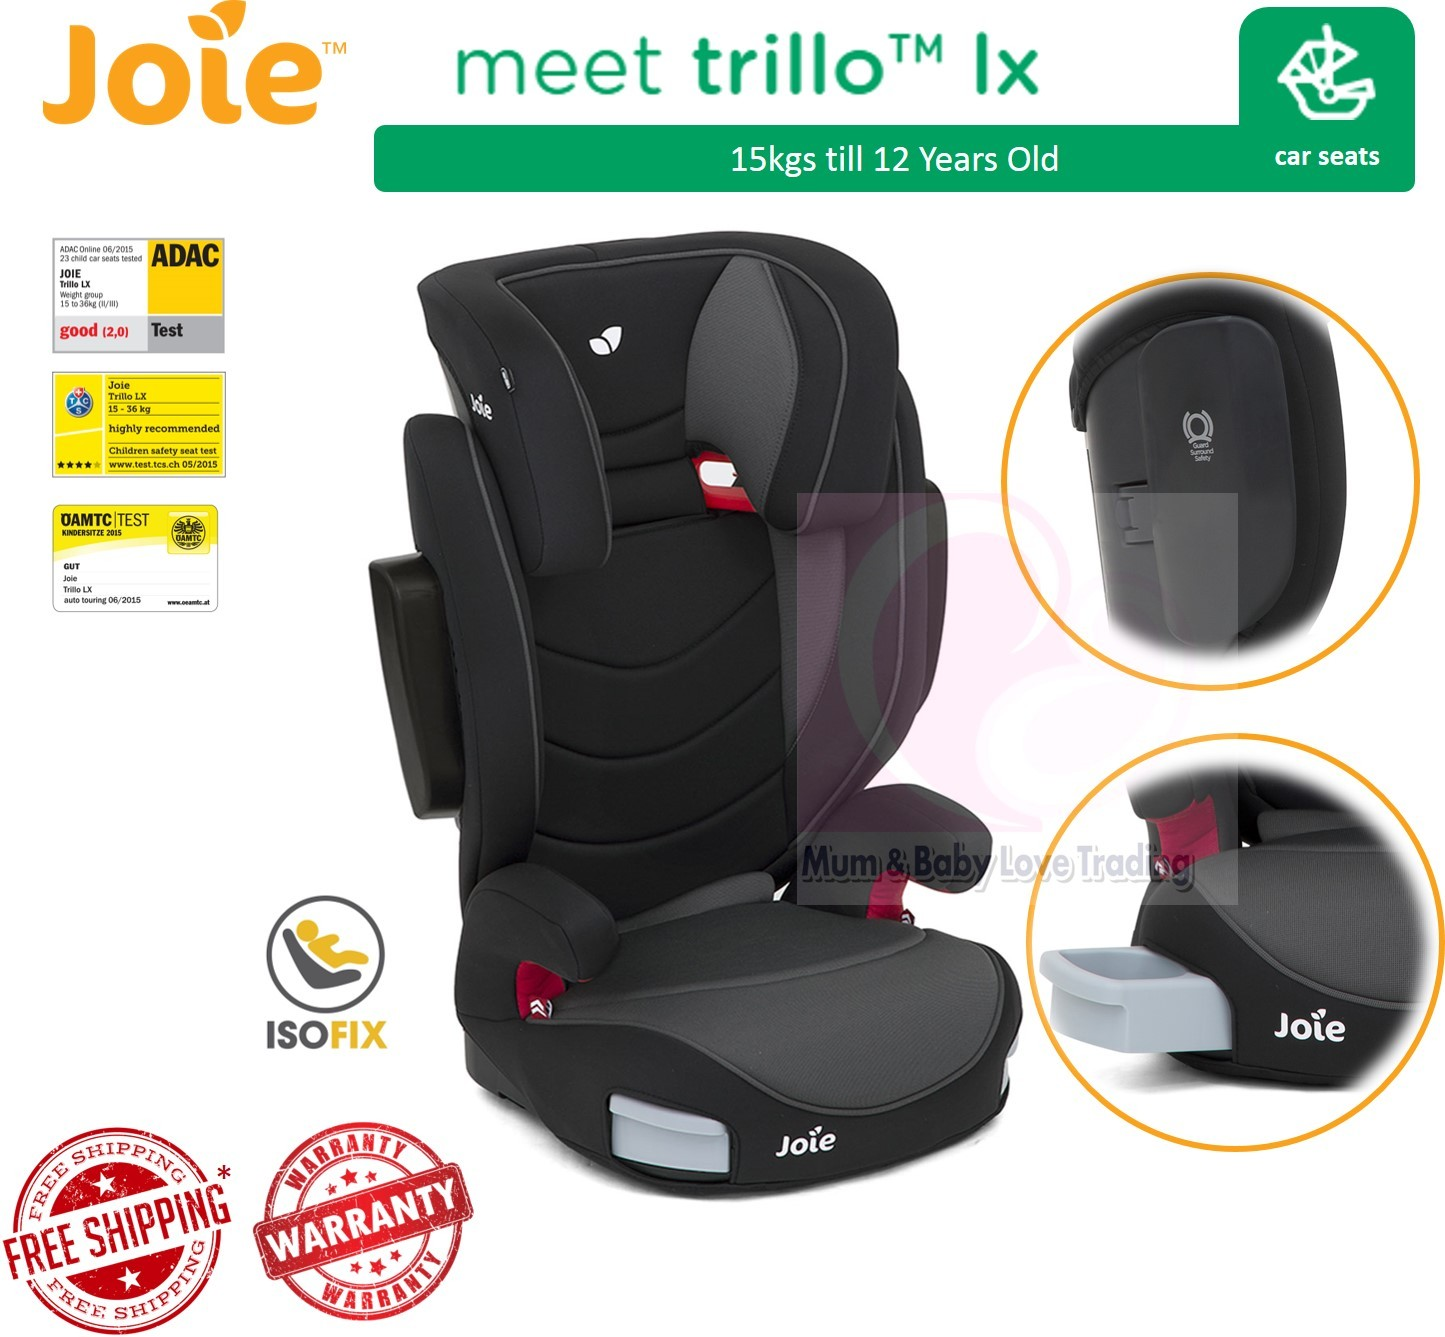 Joie Baby Car Seat Usa Joie Trillo Lx High Back Booster Car Seat With Isofix 15kg